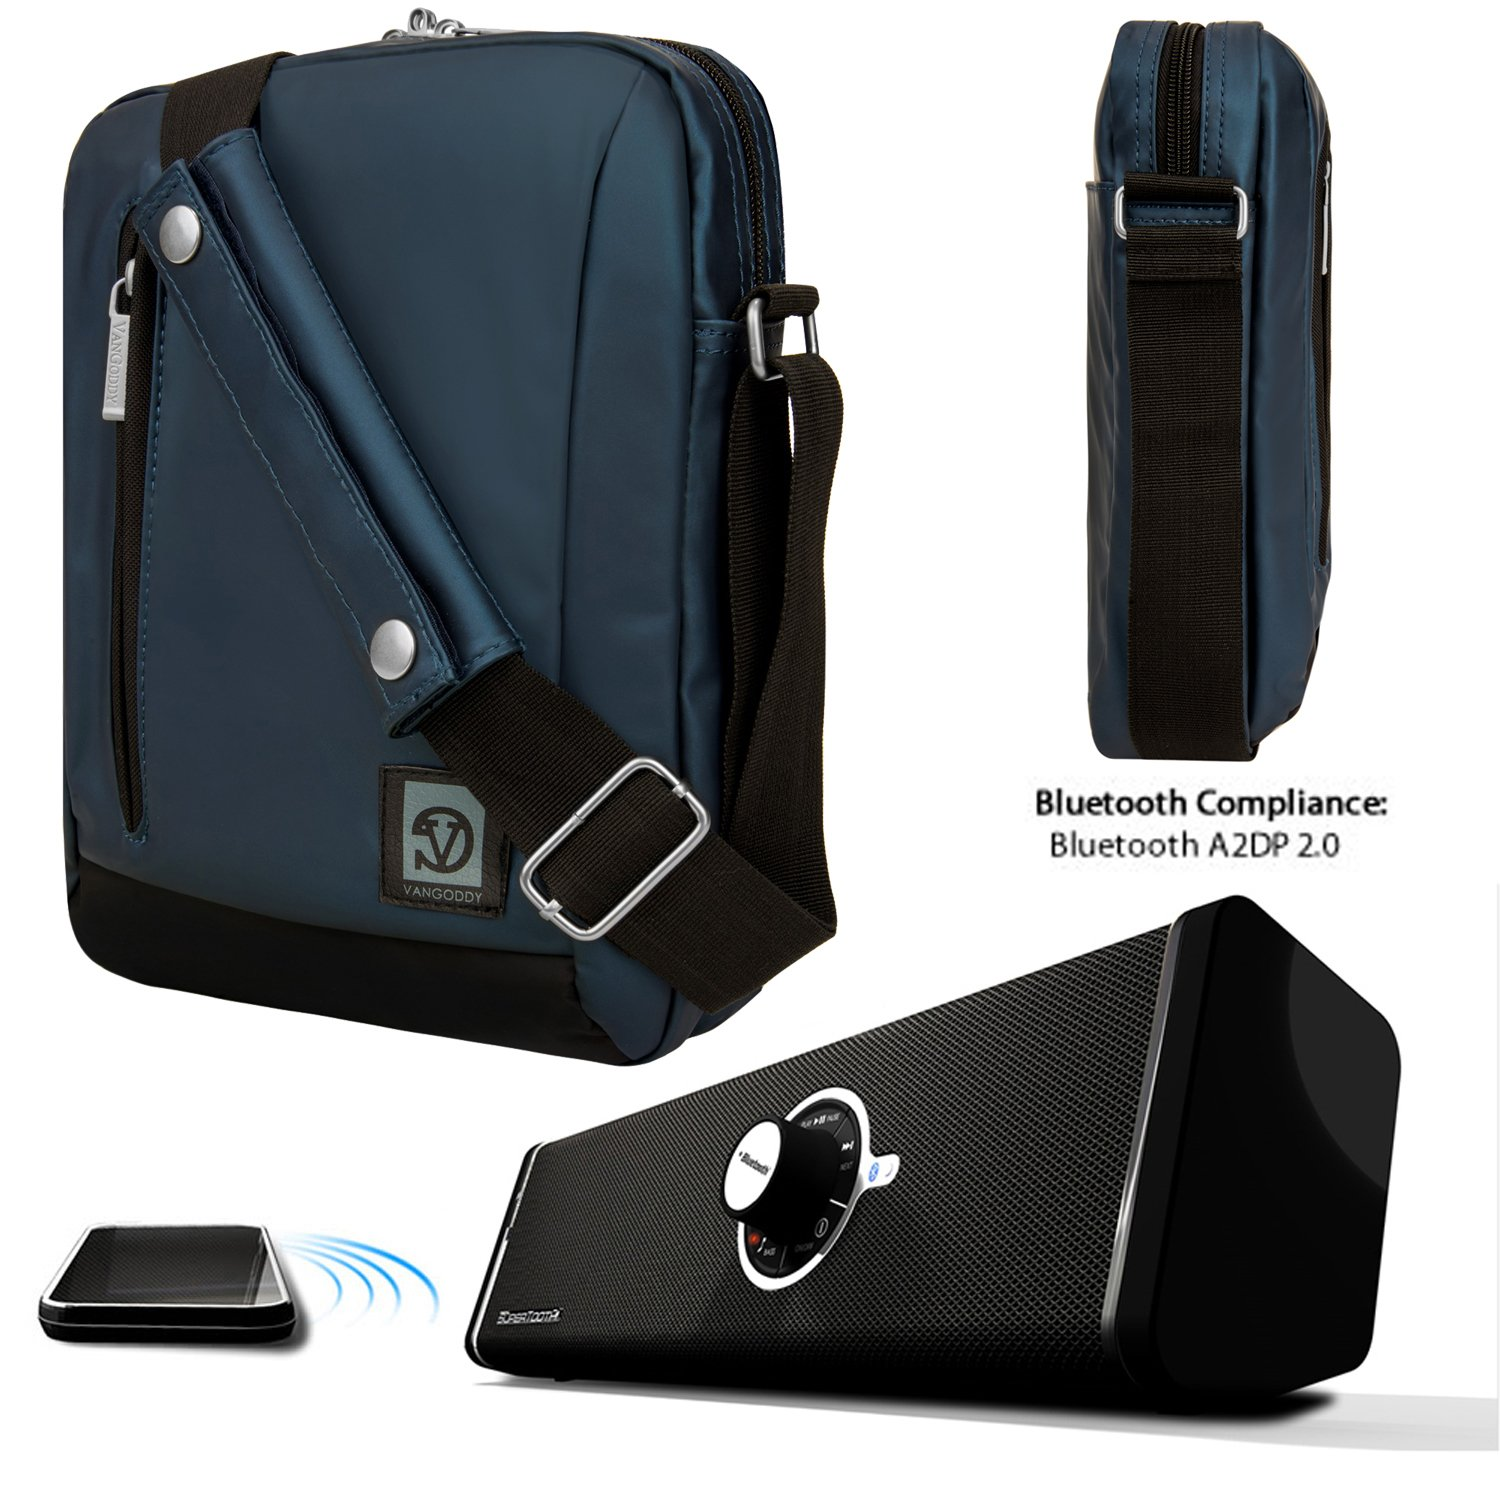 Adler Shoulder Bag Travel Case For Apple iPad Mini 3 2 1 (1st, 2nd, and 3rd Gen) + Bluetooth Speaker by Vangoddy